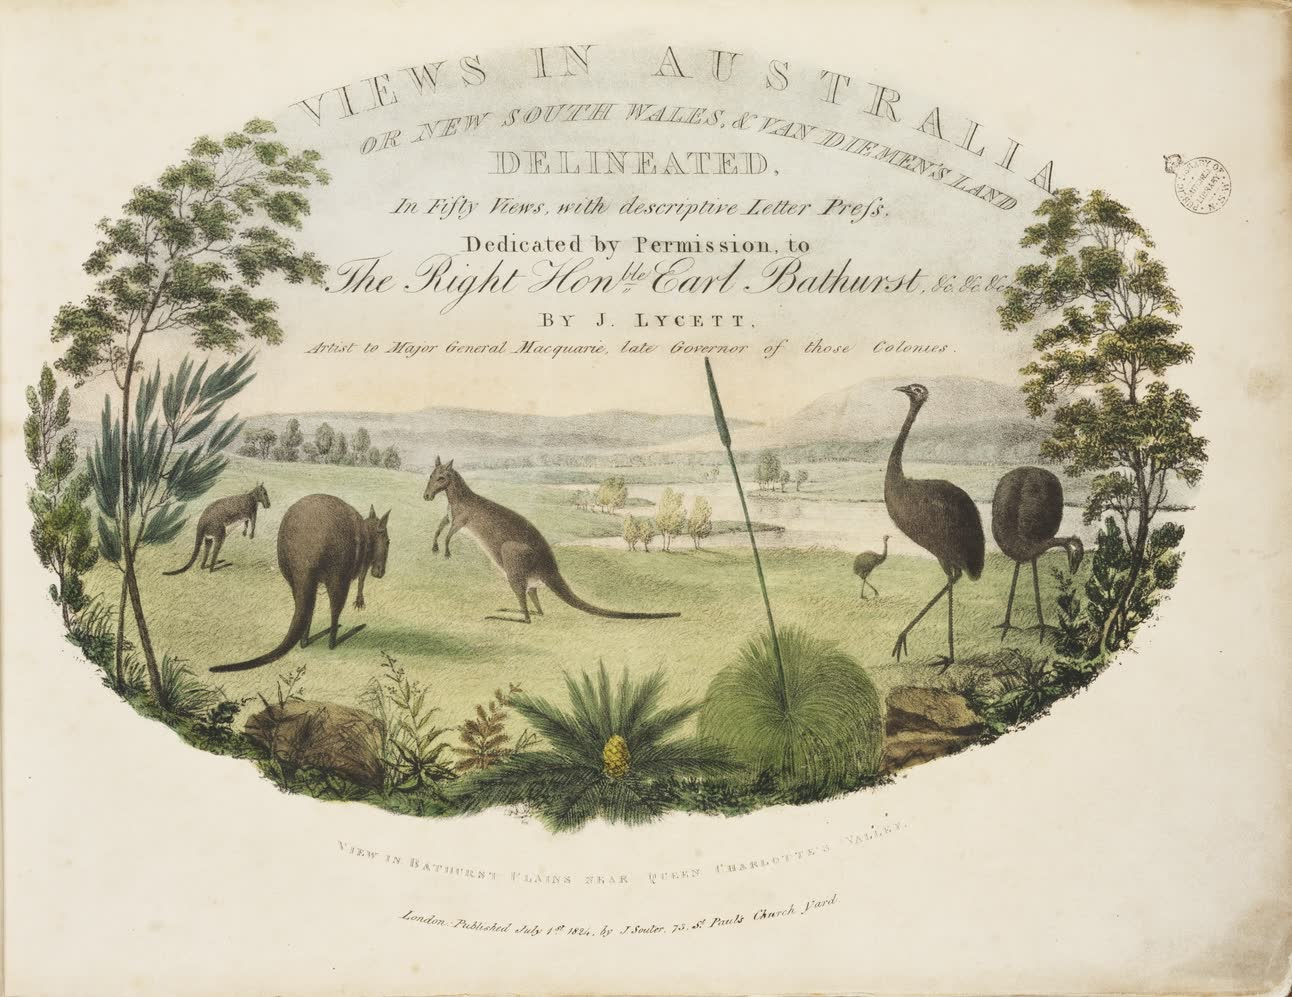 Views in Australia or New South Wales - Title Page (1825)